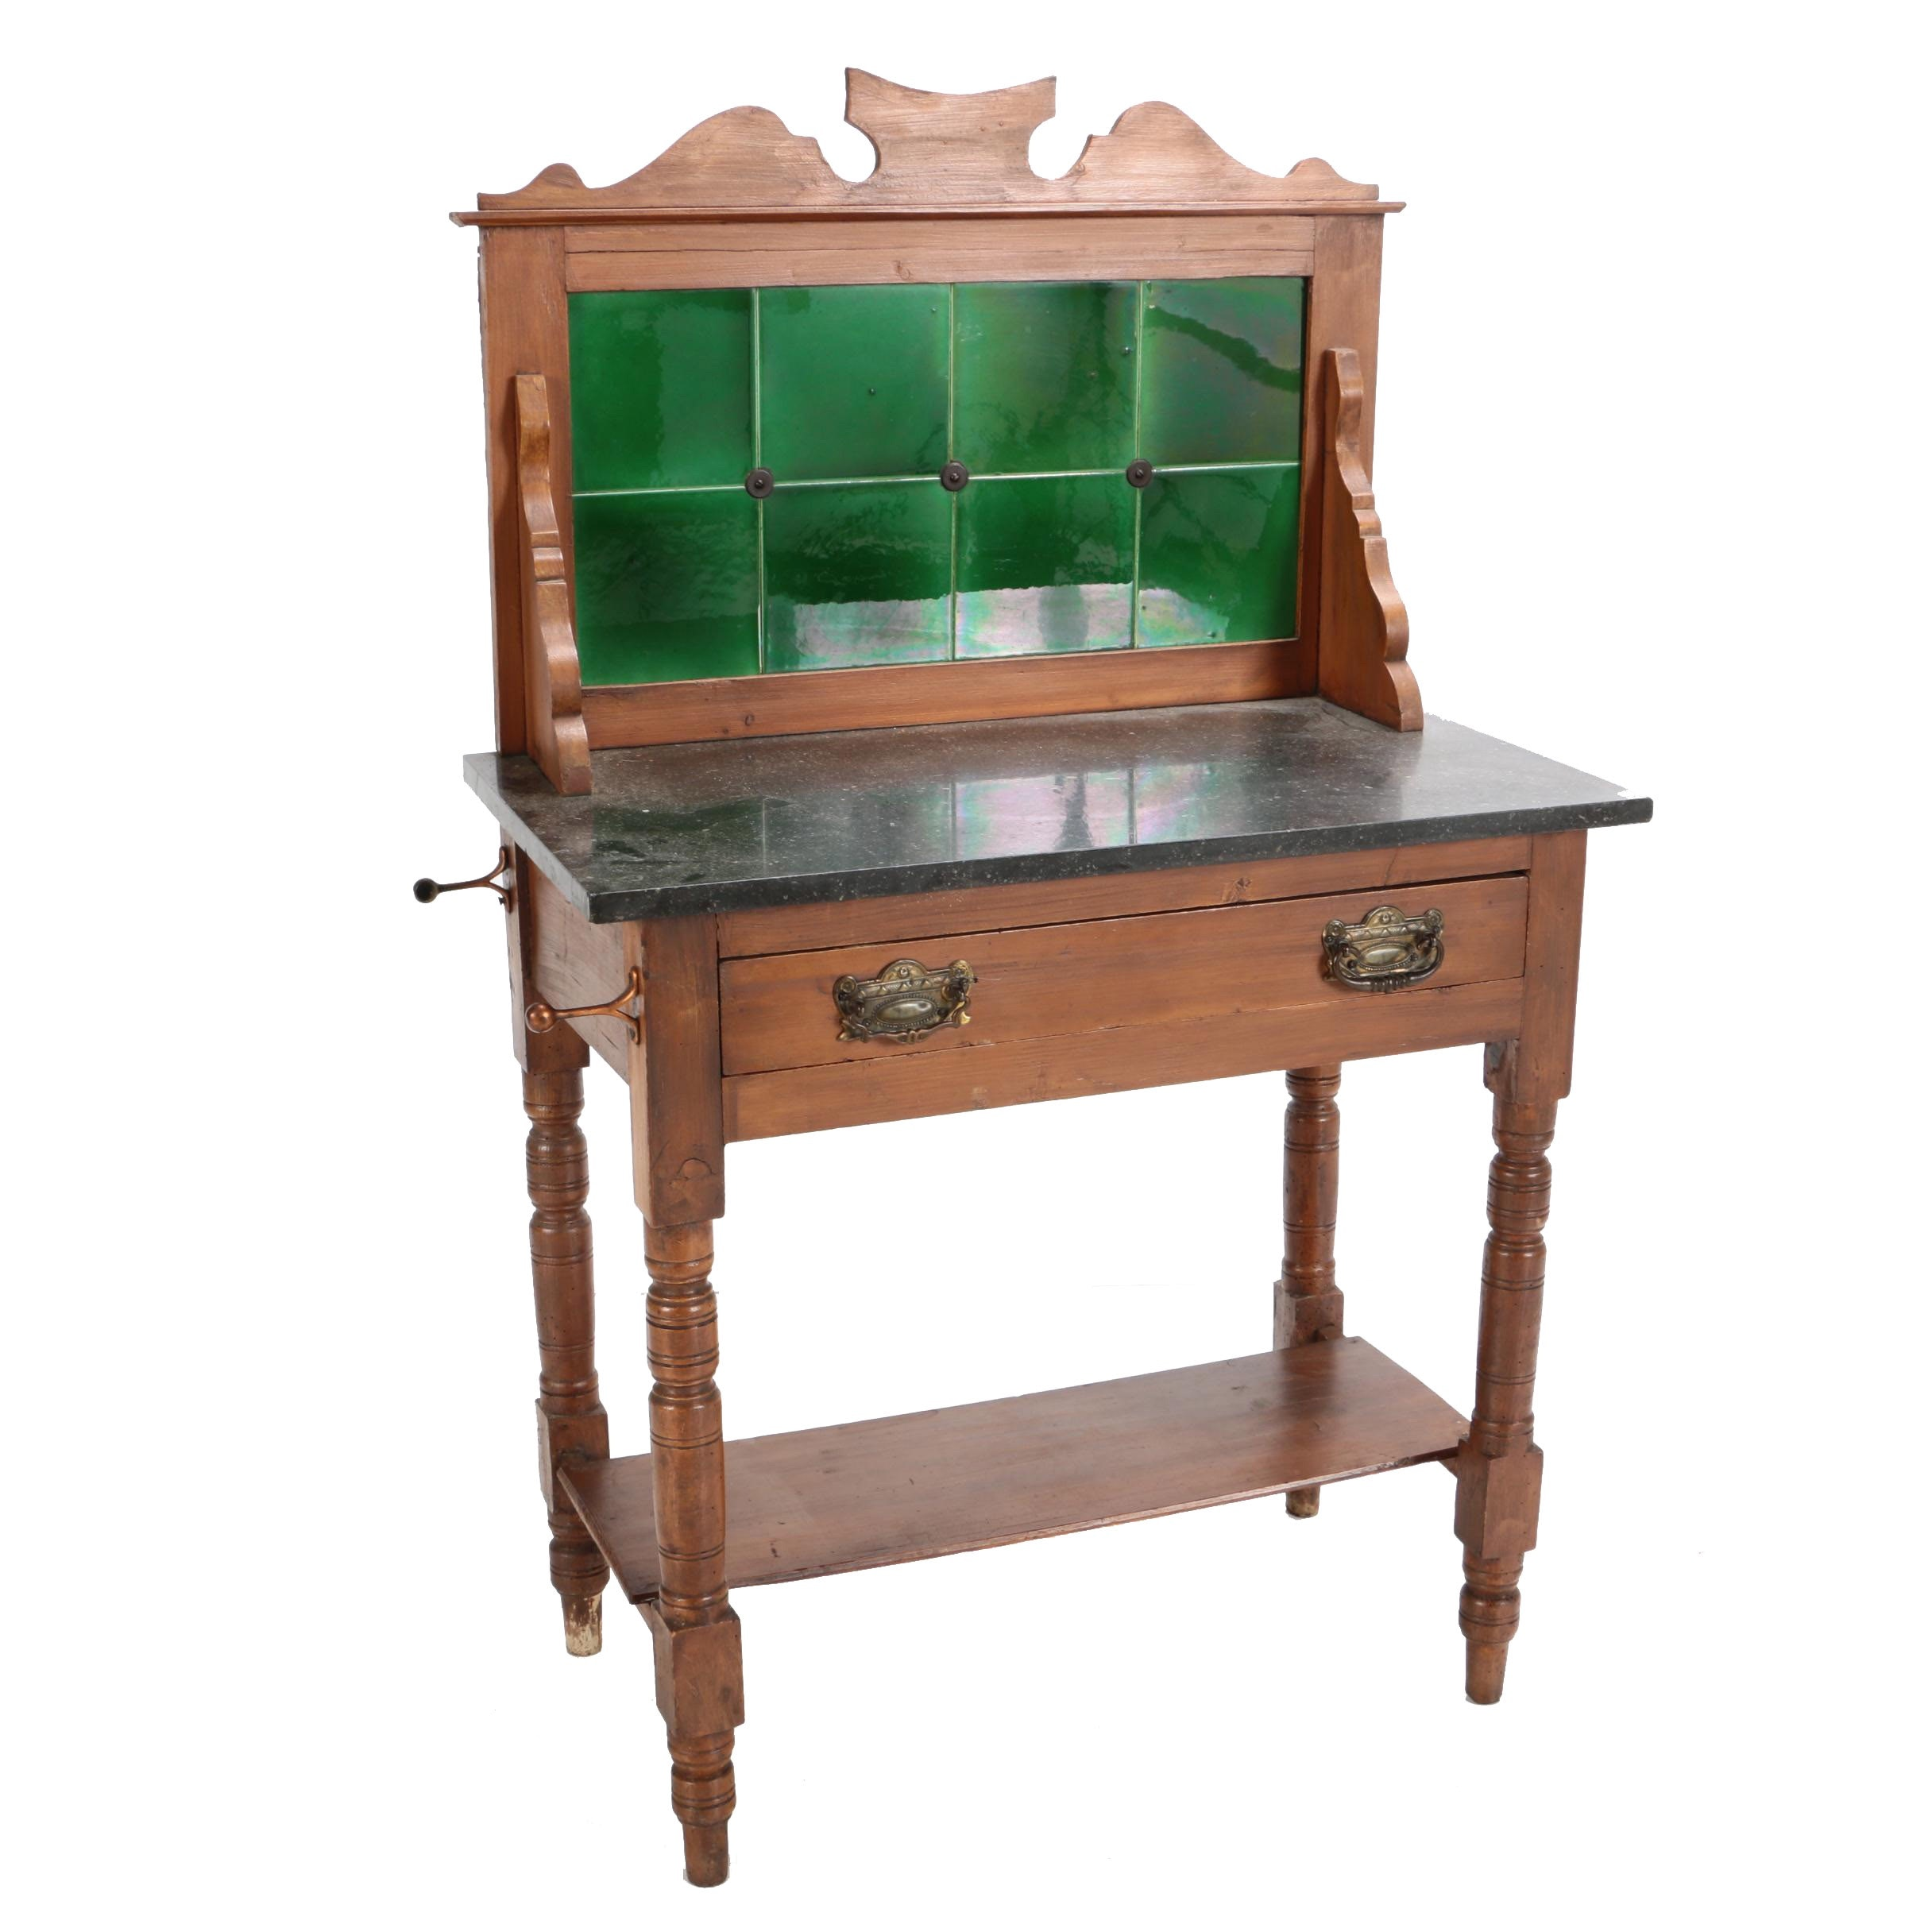 Antique Late Victorian Mahogany Washstand with Tile Backsplash